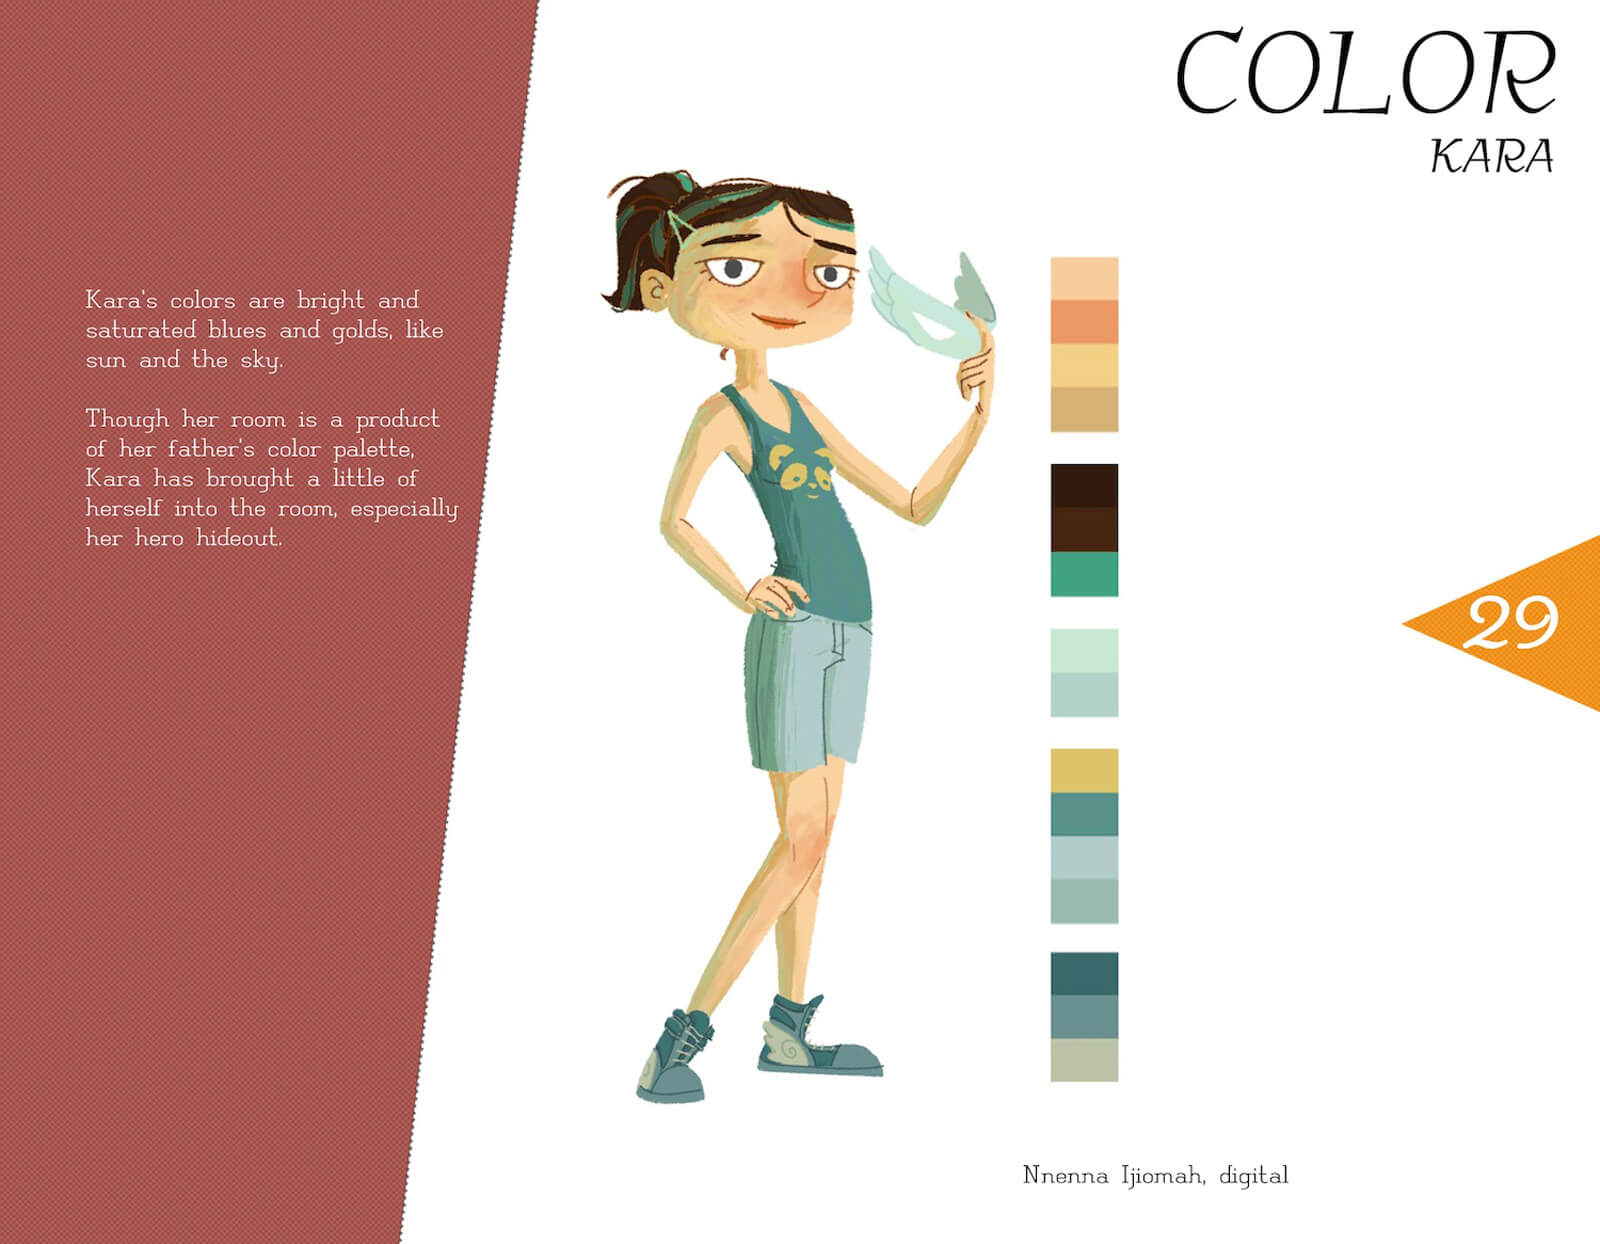 Color profile of the character Kara von Koerndaug, with a posing kara in a teal outfit, holding a light aqua mask